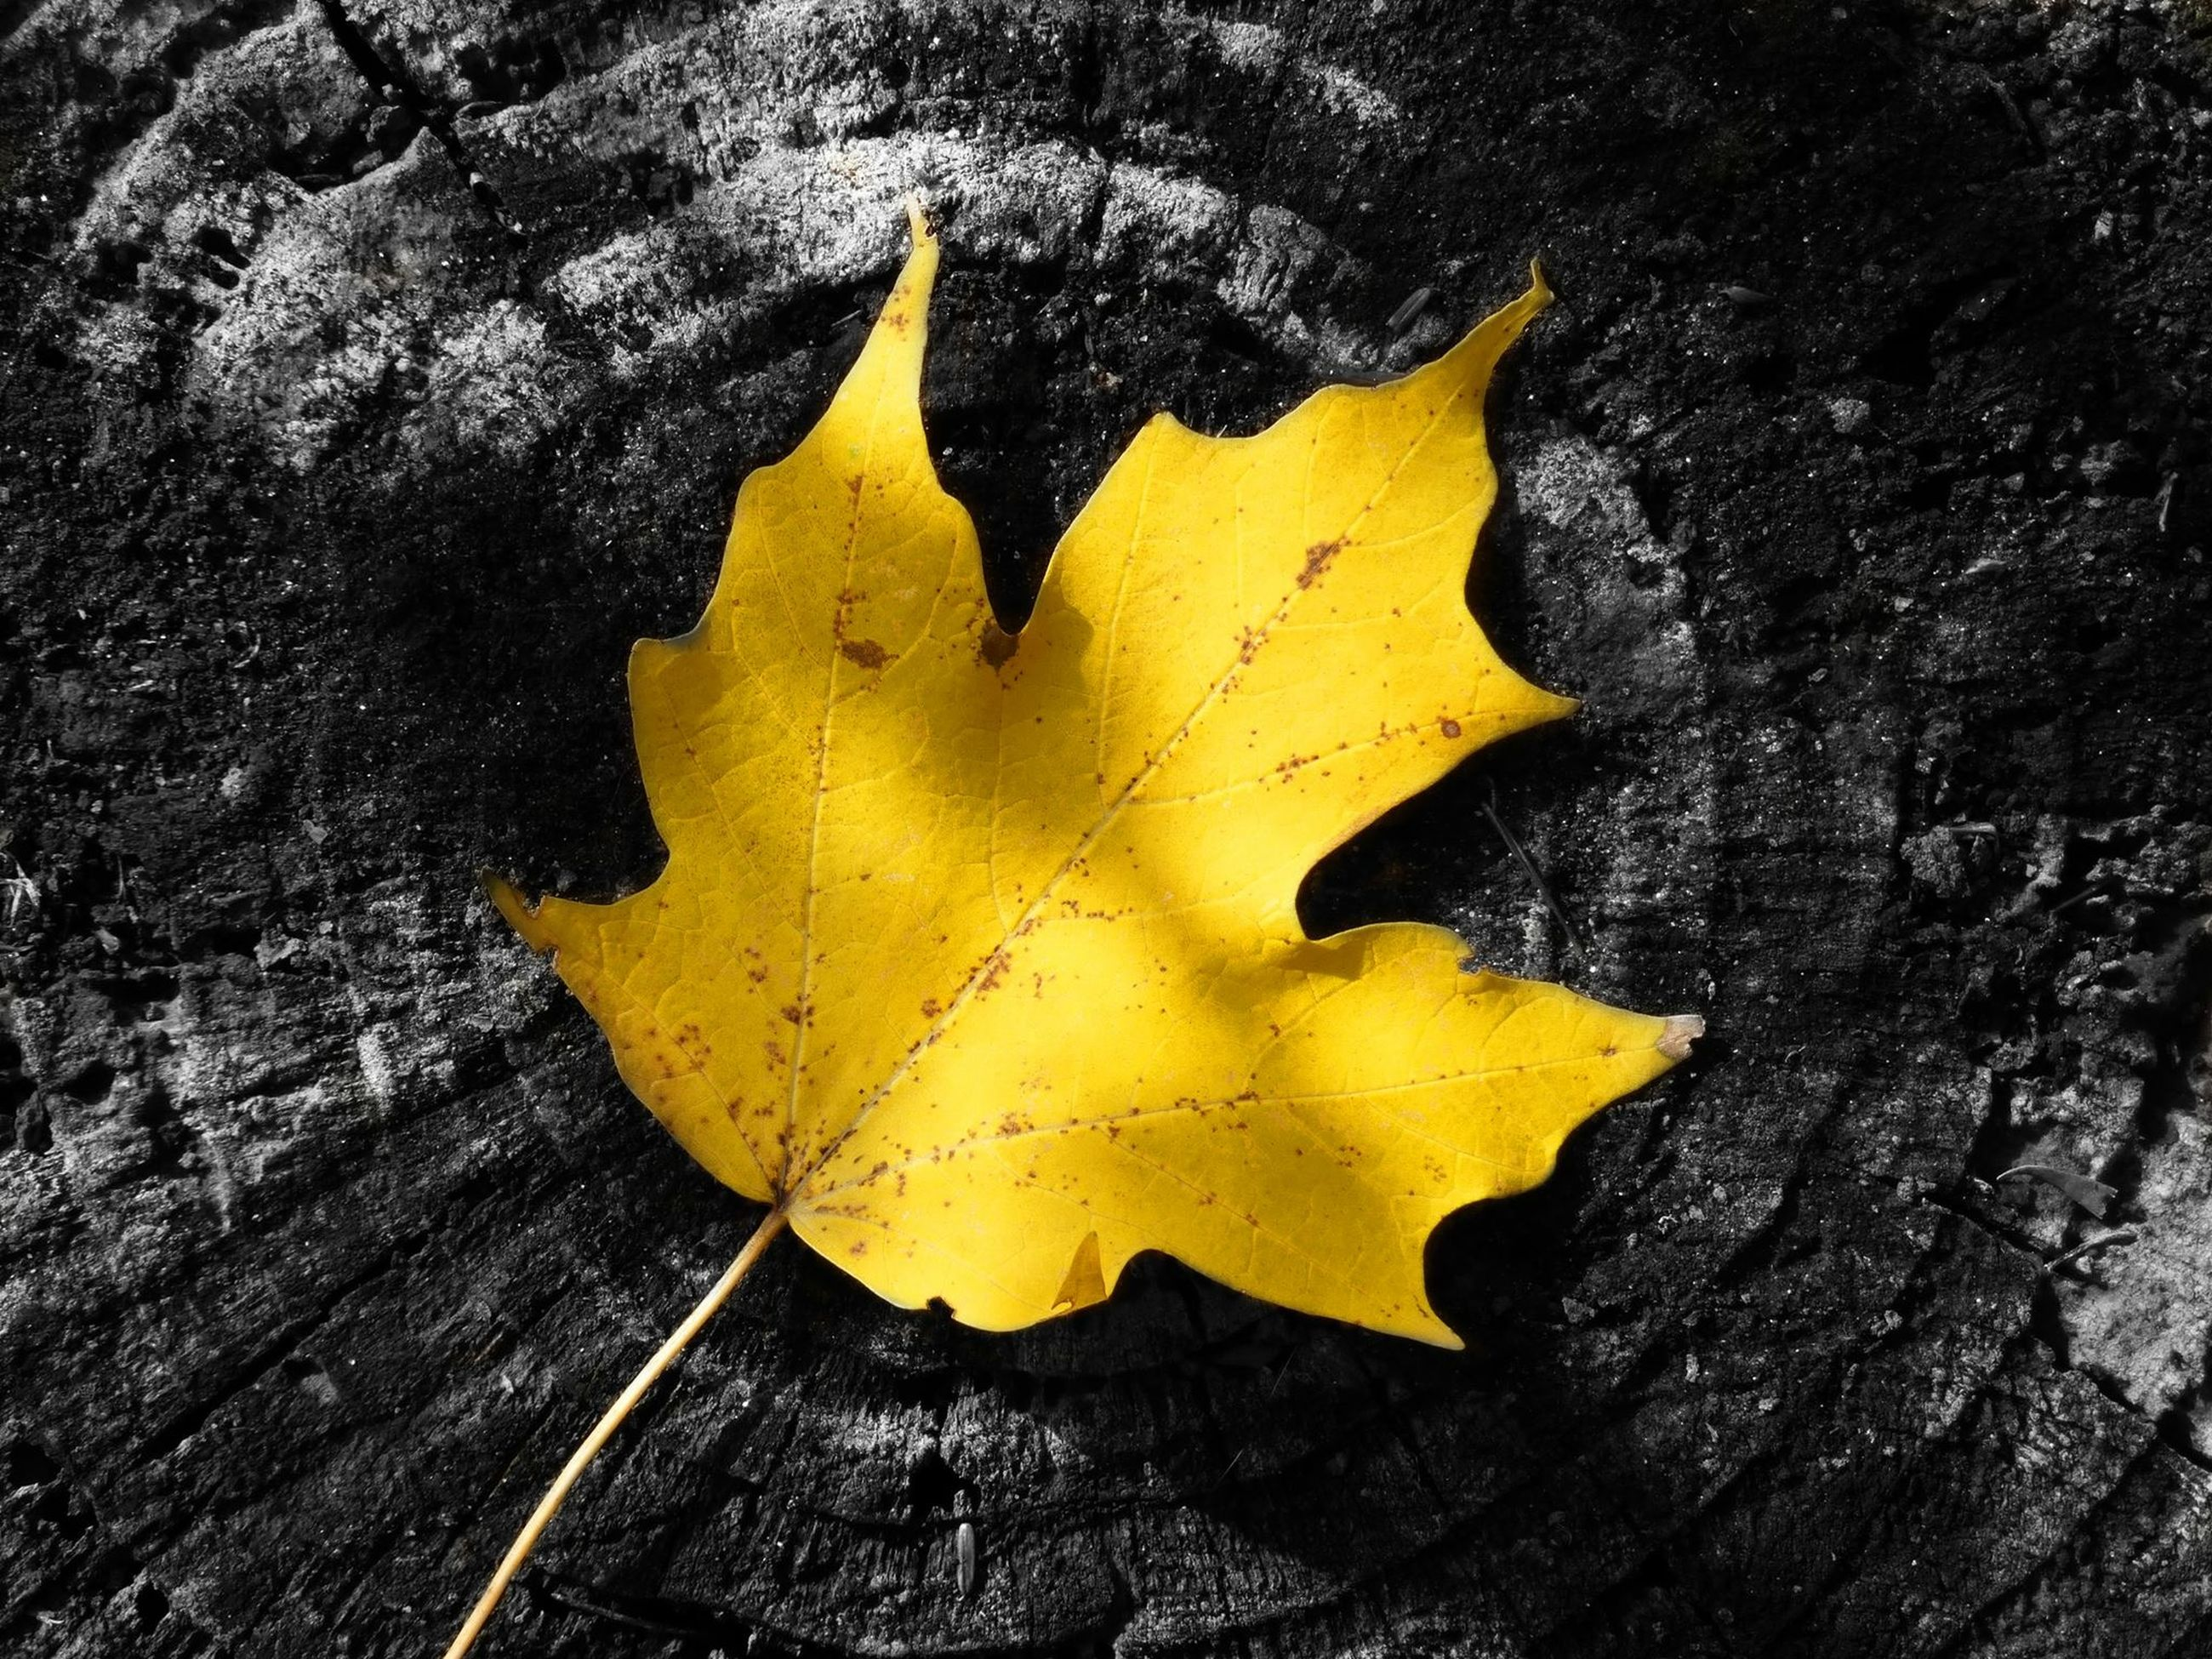 autumn, yellow, leaf, change, dry, close-up, maple leaf, season, leaf vein, natural pattern, natural condition, fallen, textured, high angle view, leaves, nature, single object, no people, fragility, pattern